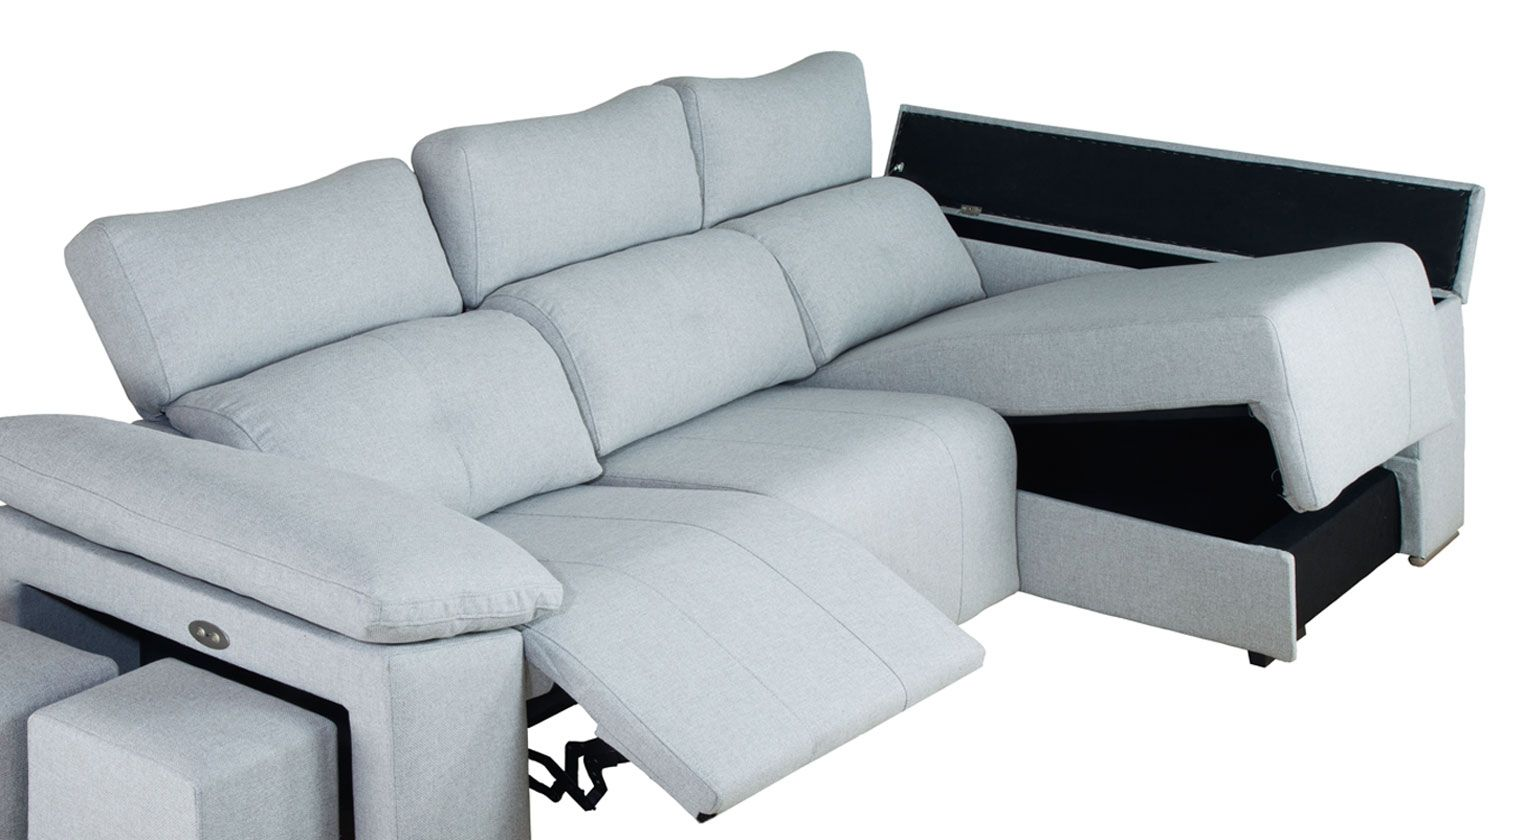 Imagen-Chaise-Longue-Relax-CALIPSO-4